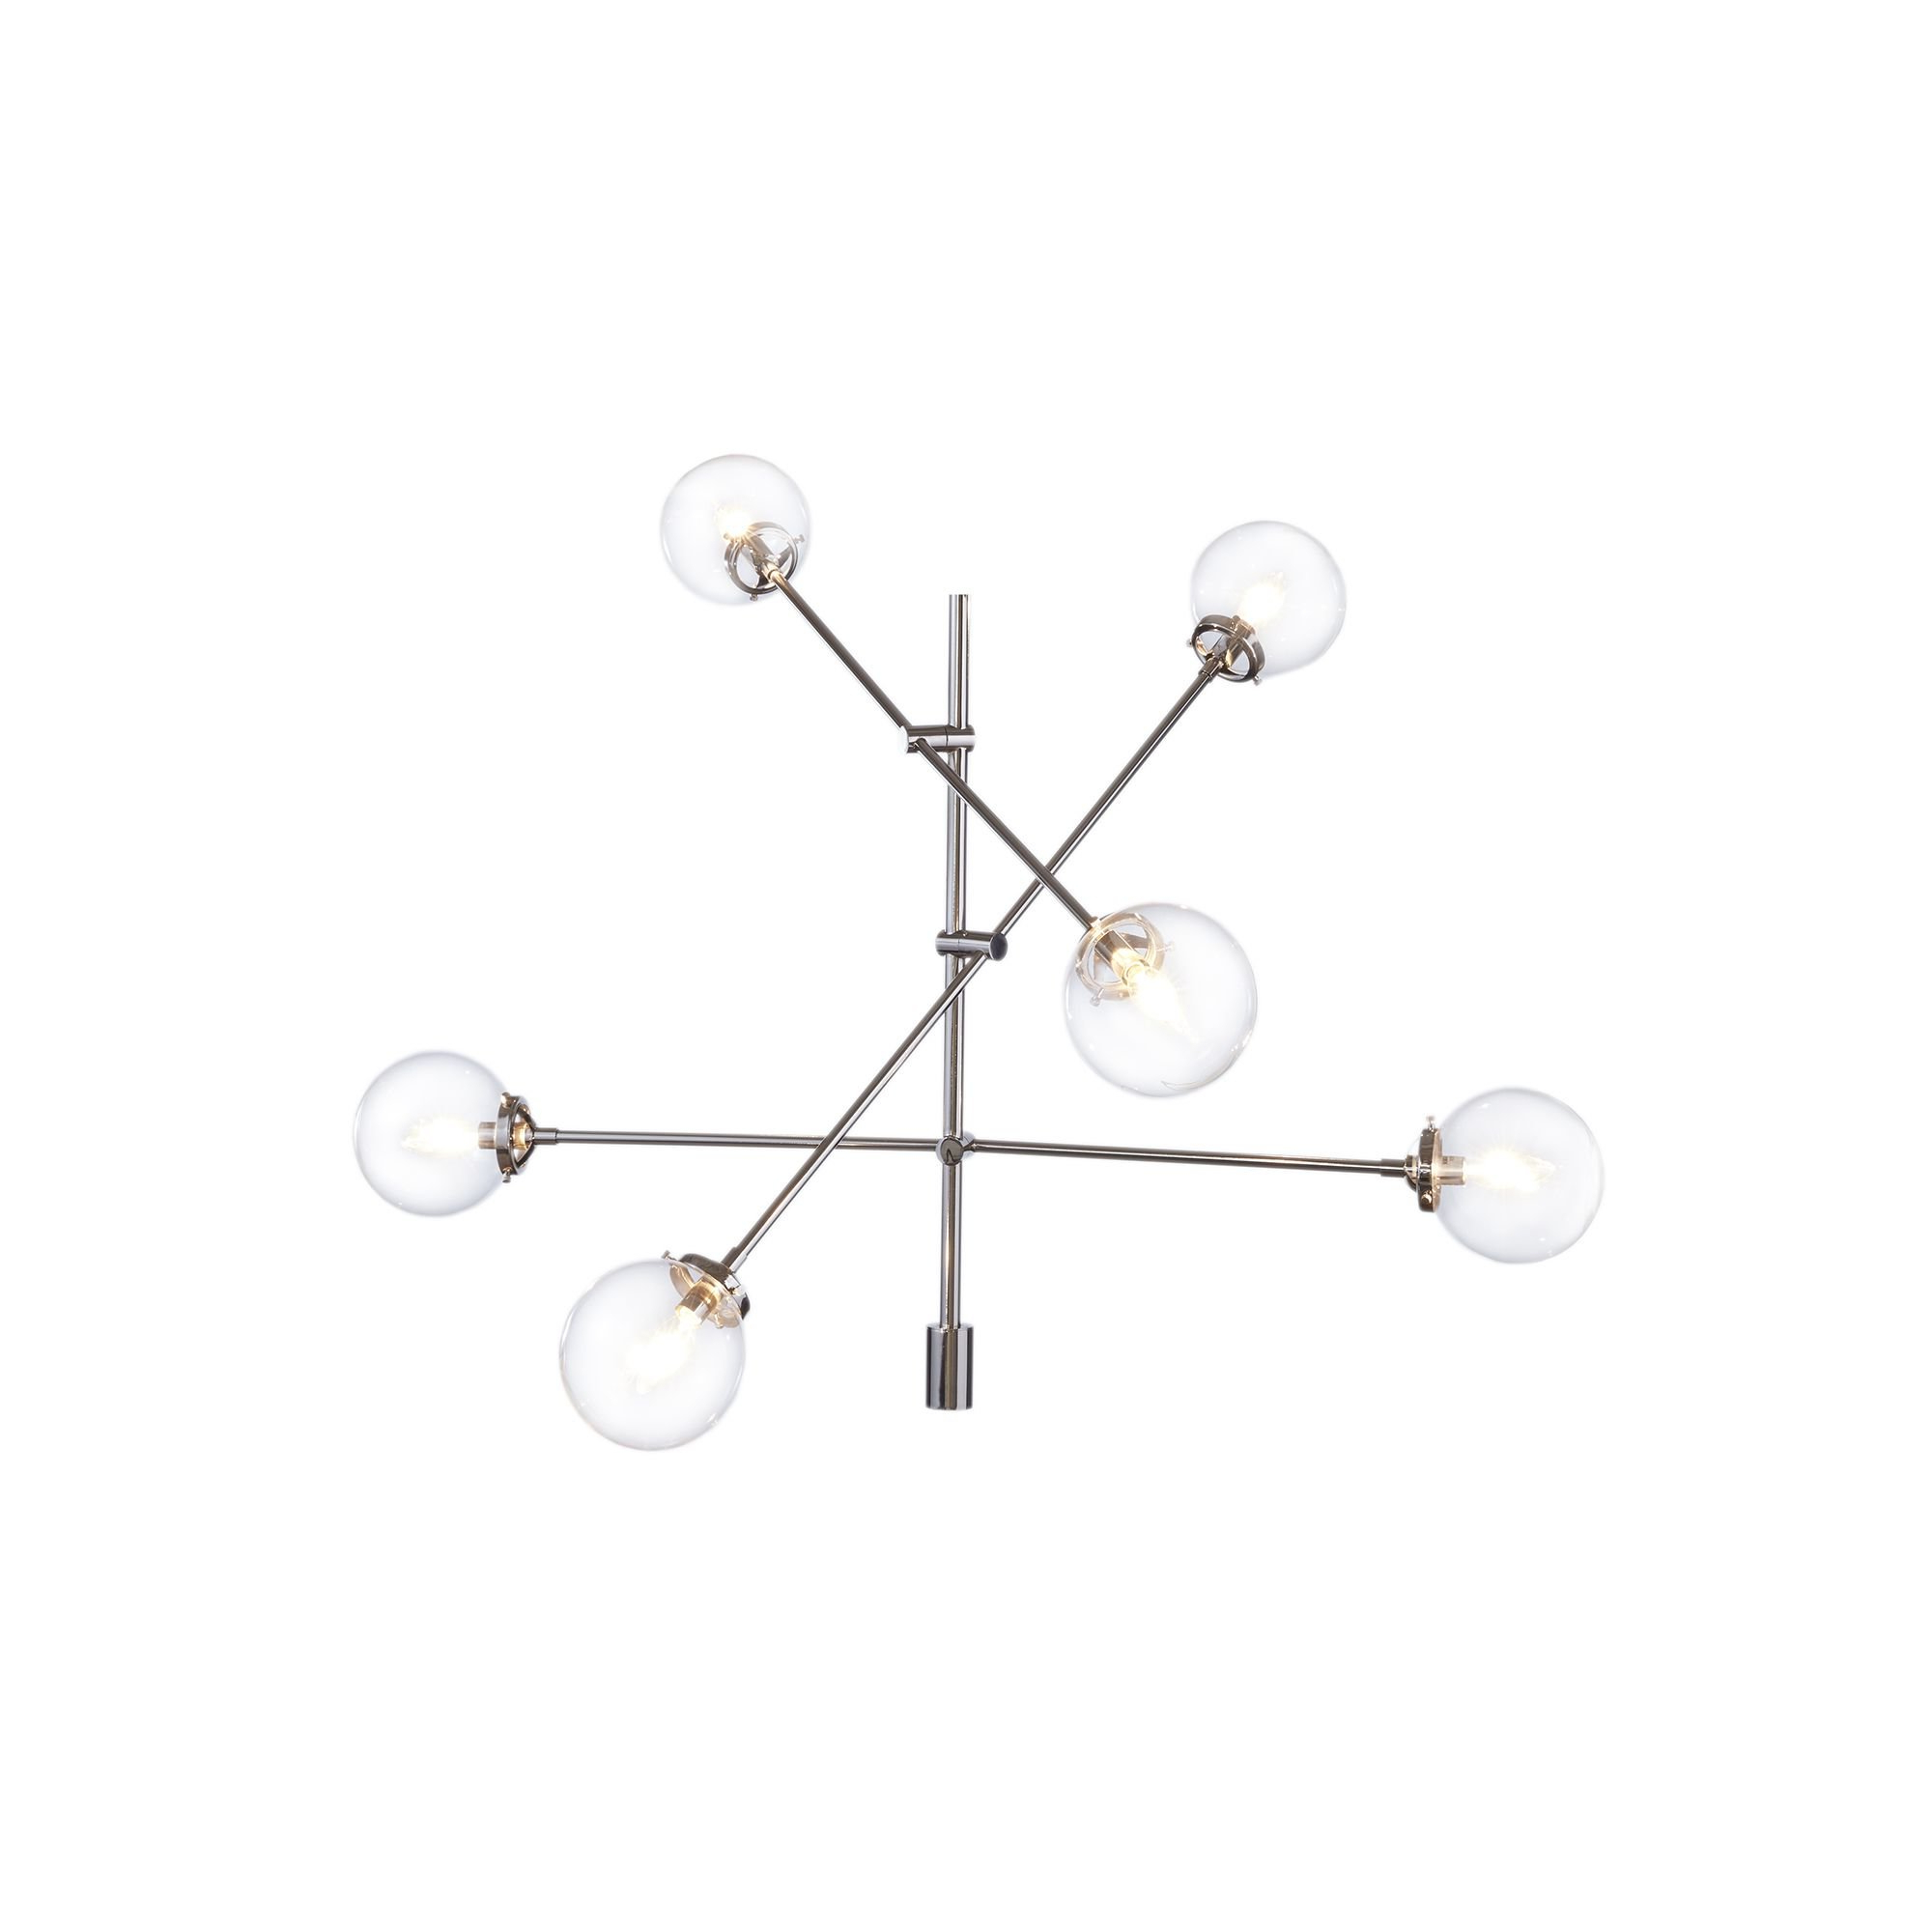 Latest Eladia 6 Light Sputnik Chandeliers Intended For Langley Street Bensley Antique 6 Light Sputnik Chandelier (View 21 of 25)